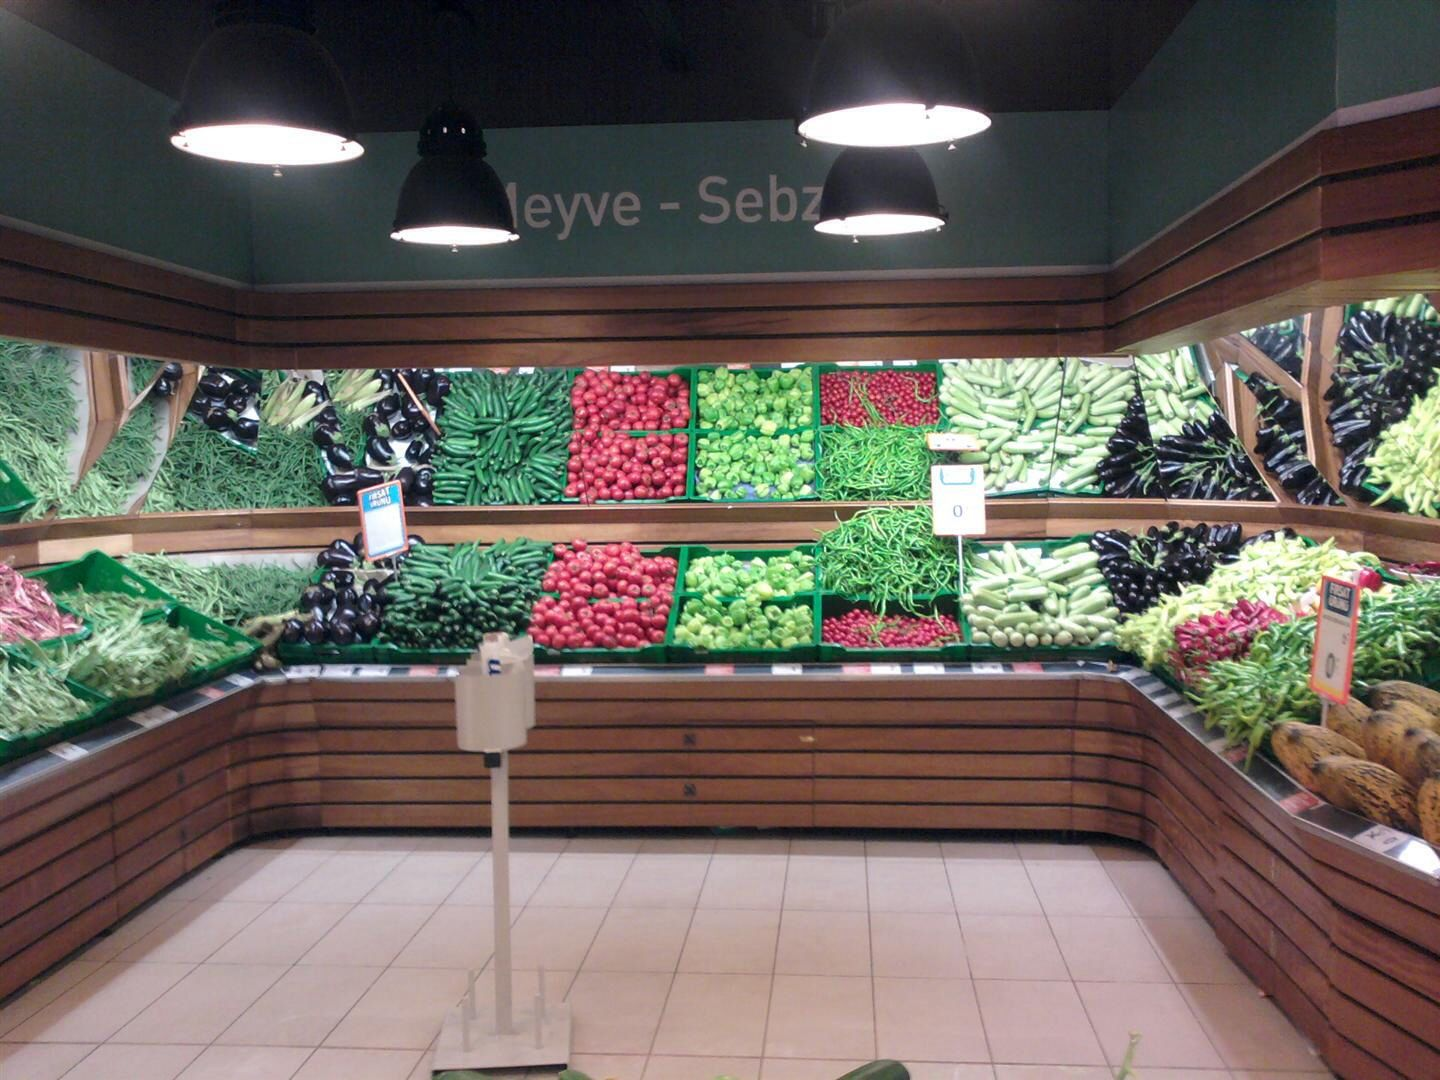 Supermarkets grocery store designs grocery store designs for Fresh design